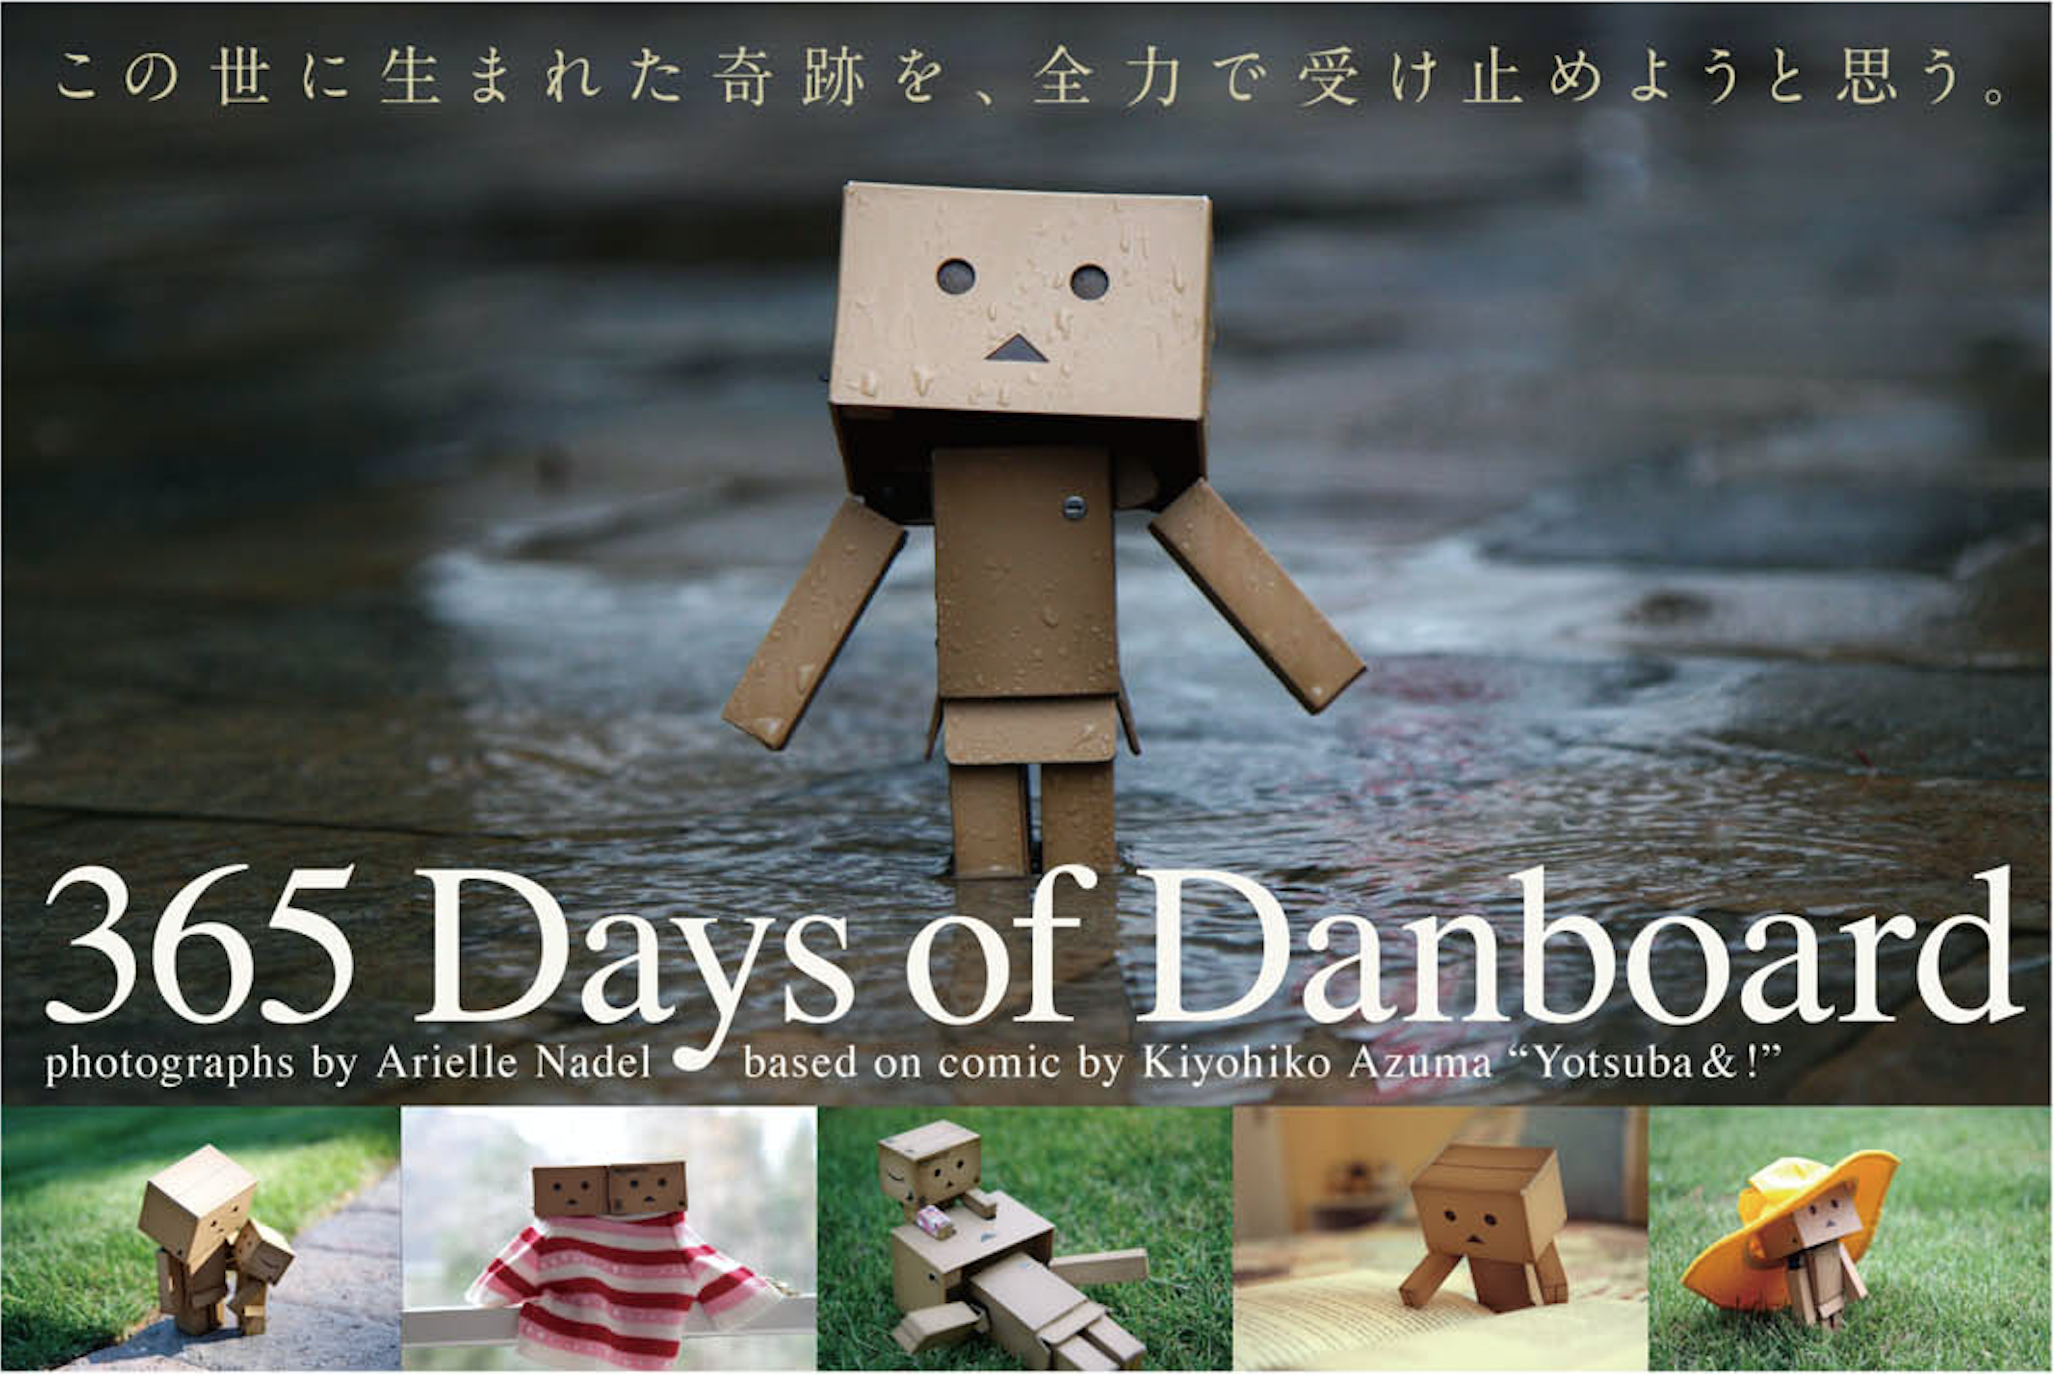 365 Days of Danboard - 10/27/2011